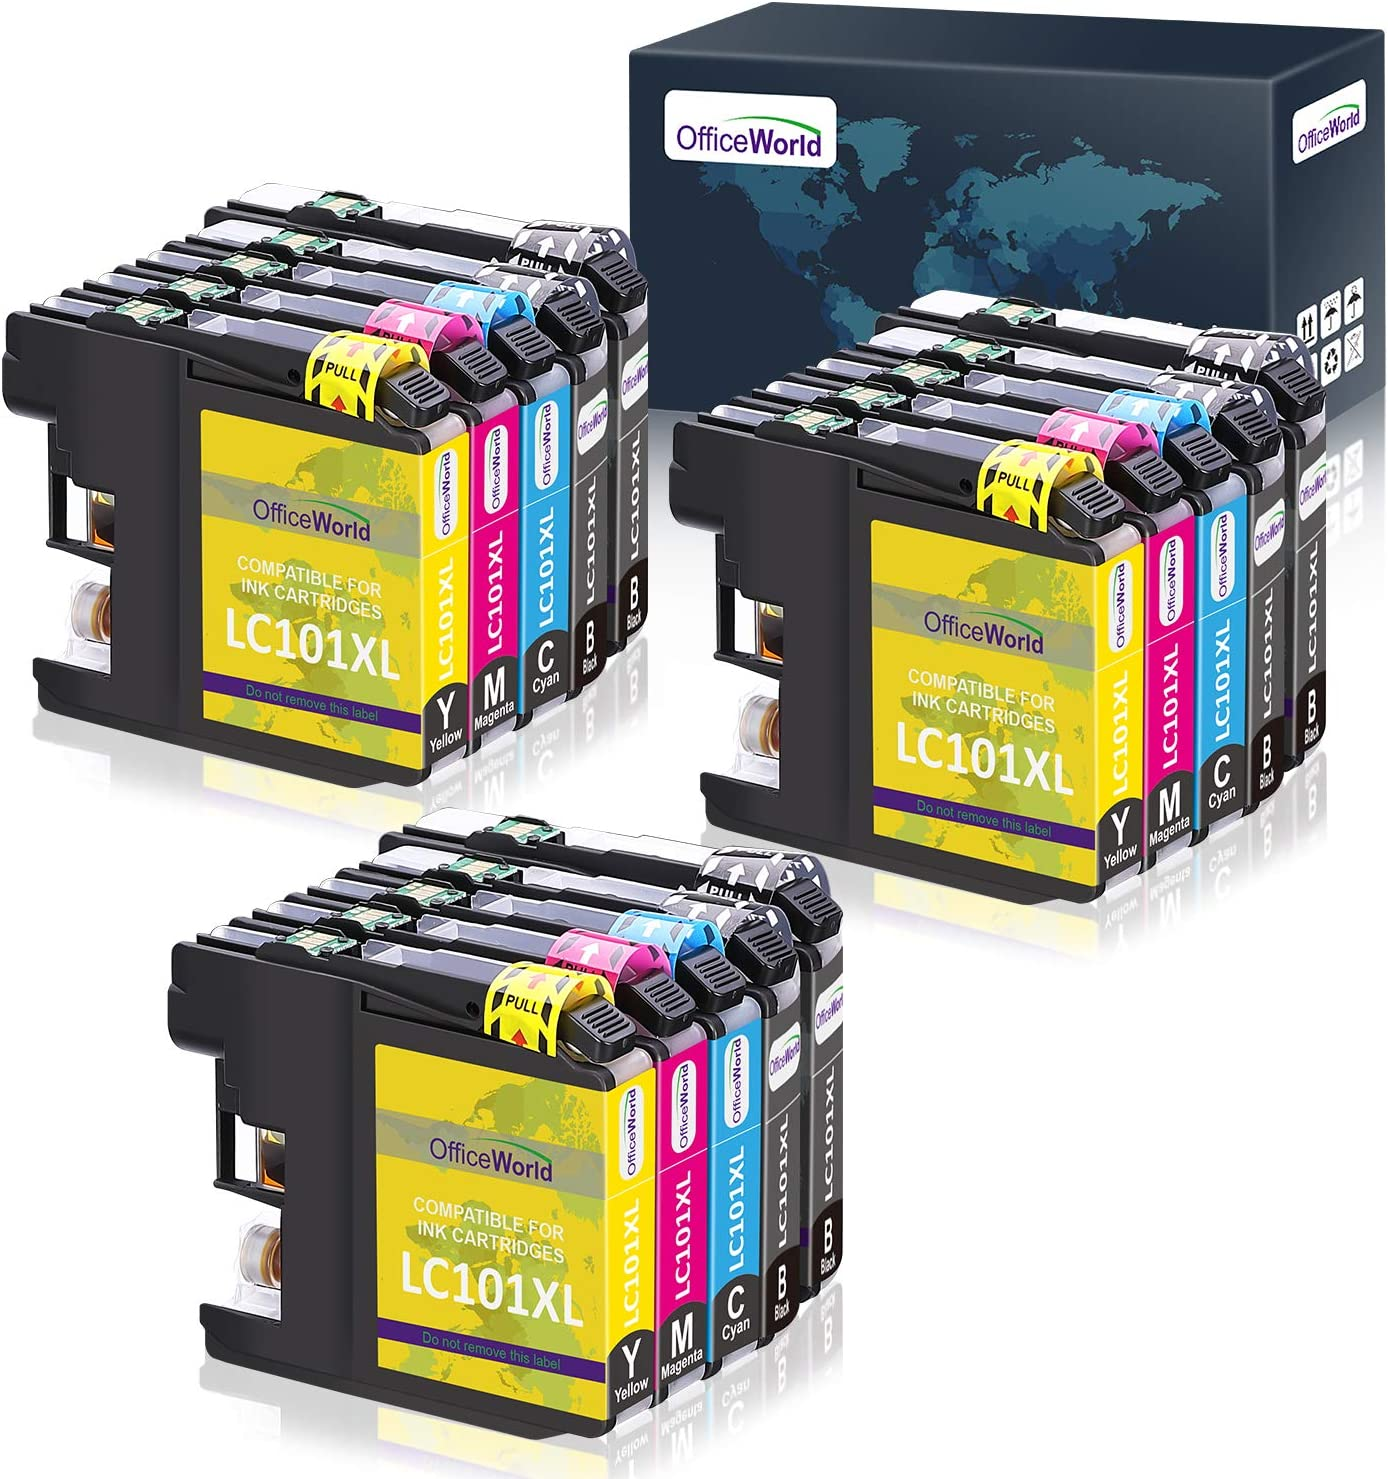 OfficeWorld Compatible Ink Cartridges Replacement for Brother LC101 LC101XL LC103 LC103XL, work with Brother MFC-J470DW MFC-J6920DW MFC-J475DW MFC-J450DW 15 Pack (6 Black, 3 Cyan, 3 Magenta, 3 Yellow)